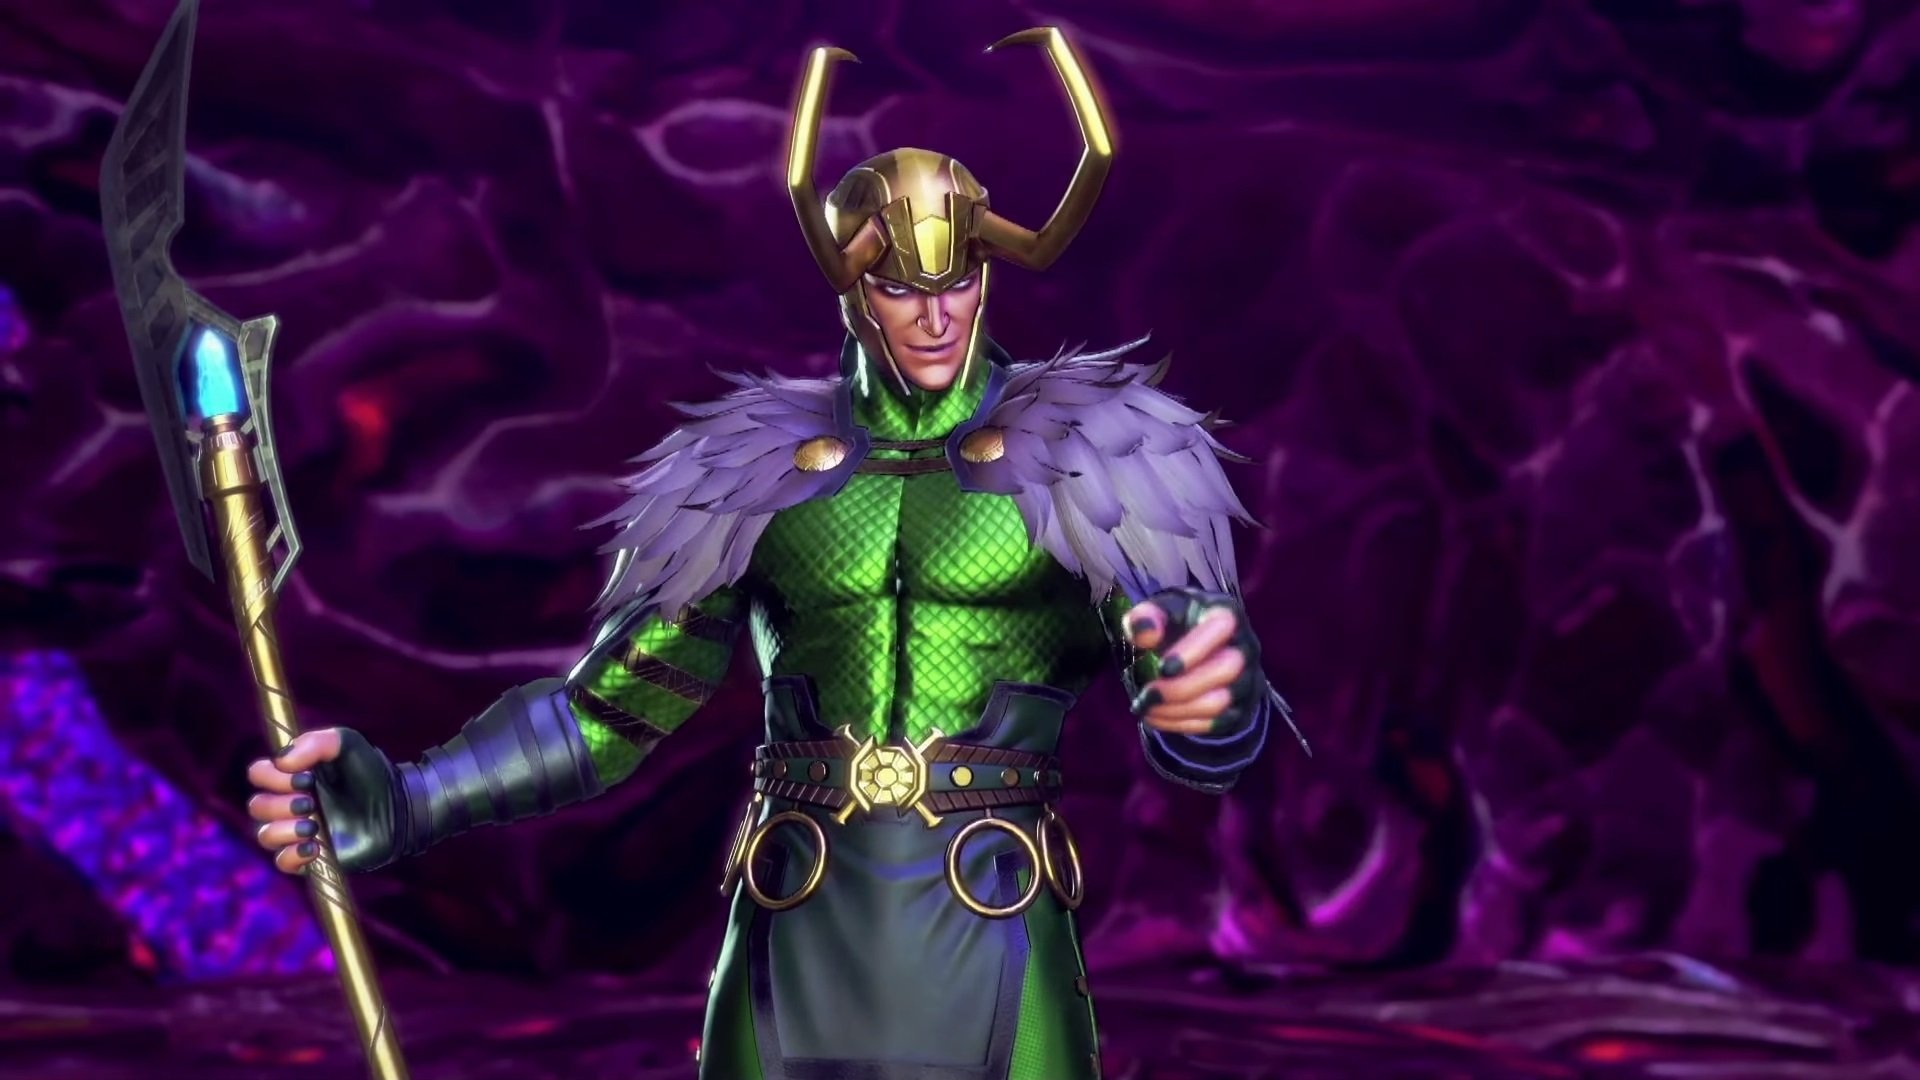 How to unlock Loki in Marvel Ultimate Alliance 3